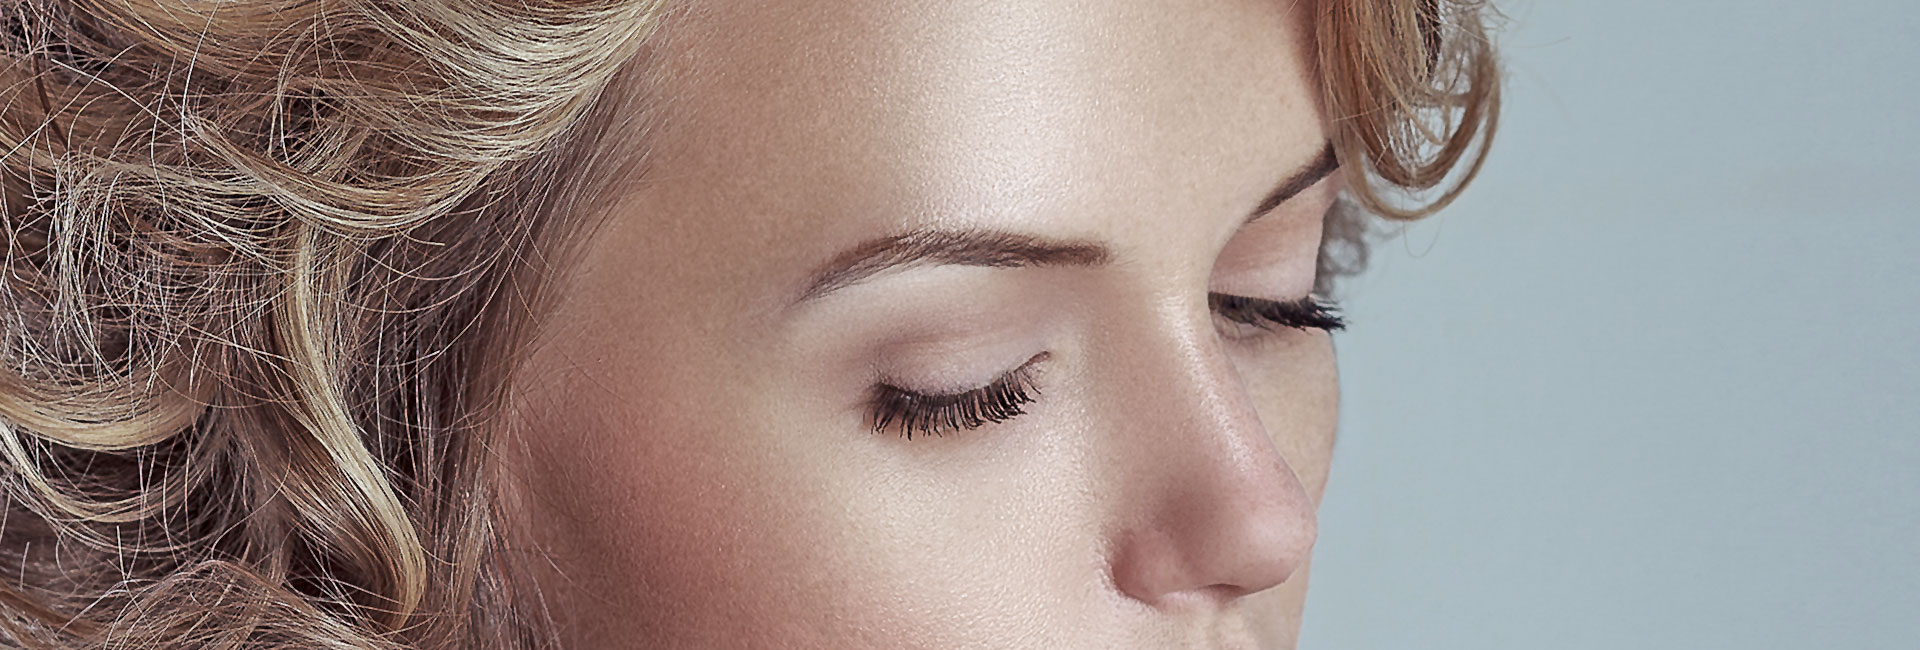 Beautician For Eyebrow Threading In Millharbour